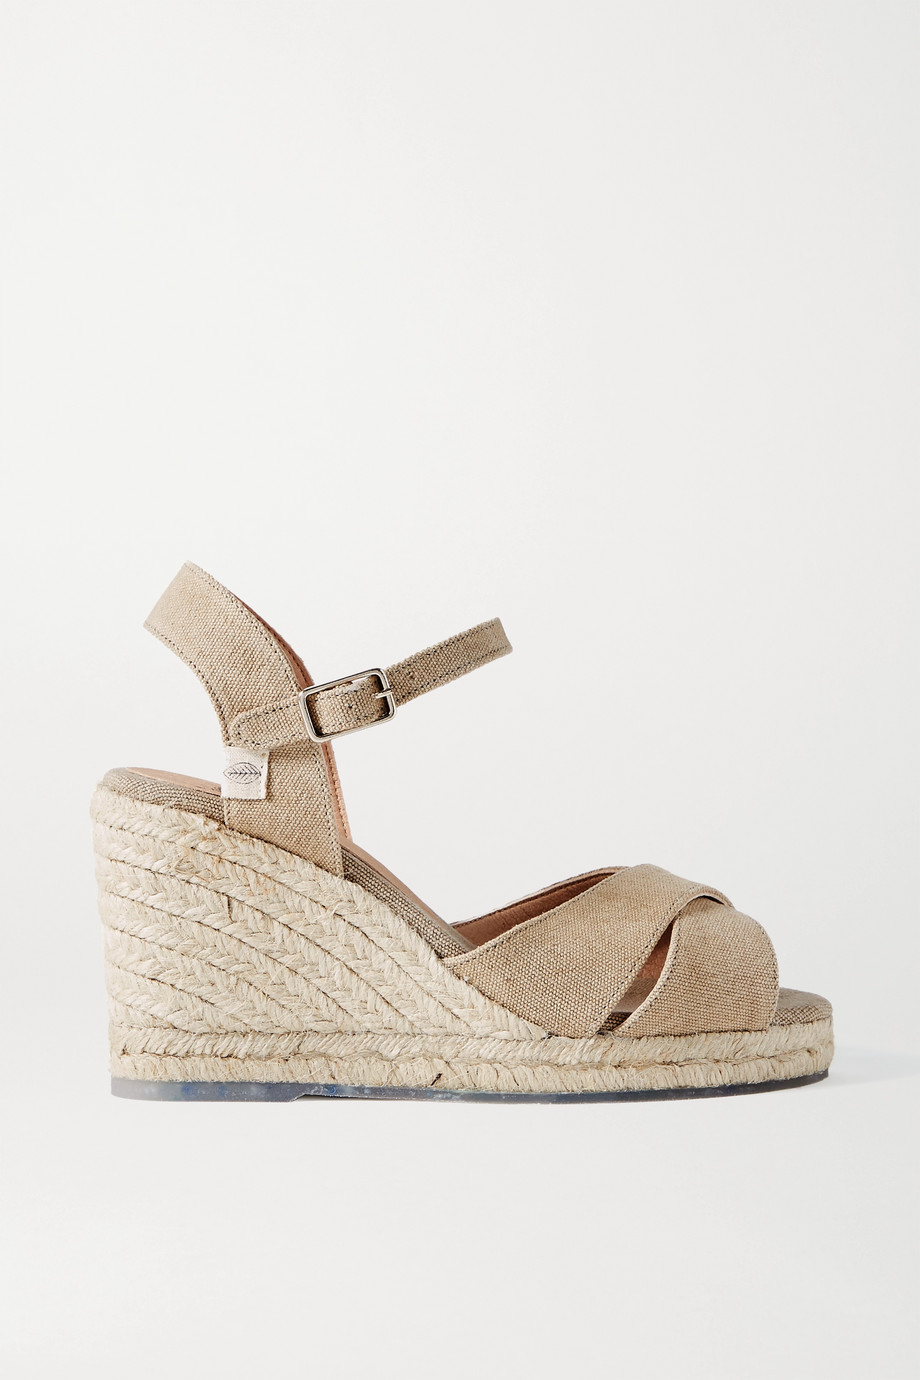 Castañer + NET SUSTAIN Blaudell 80 canvas wedge sandals